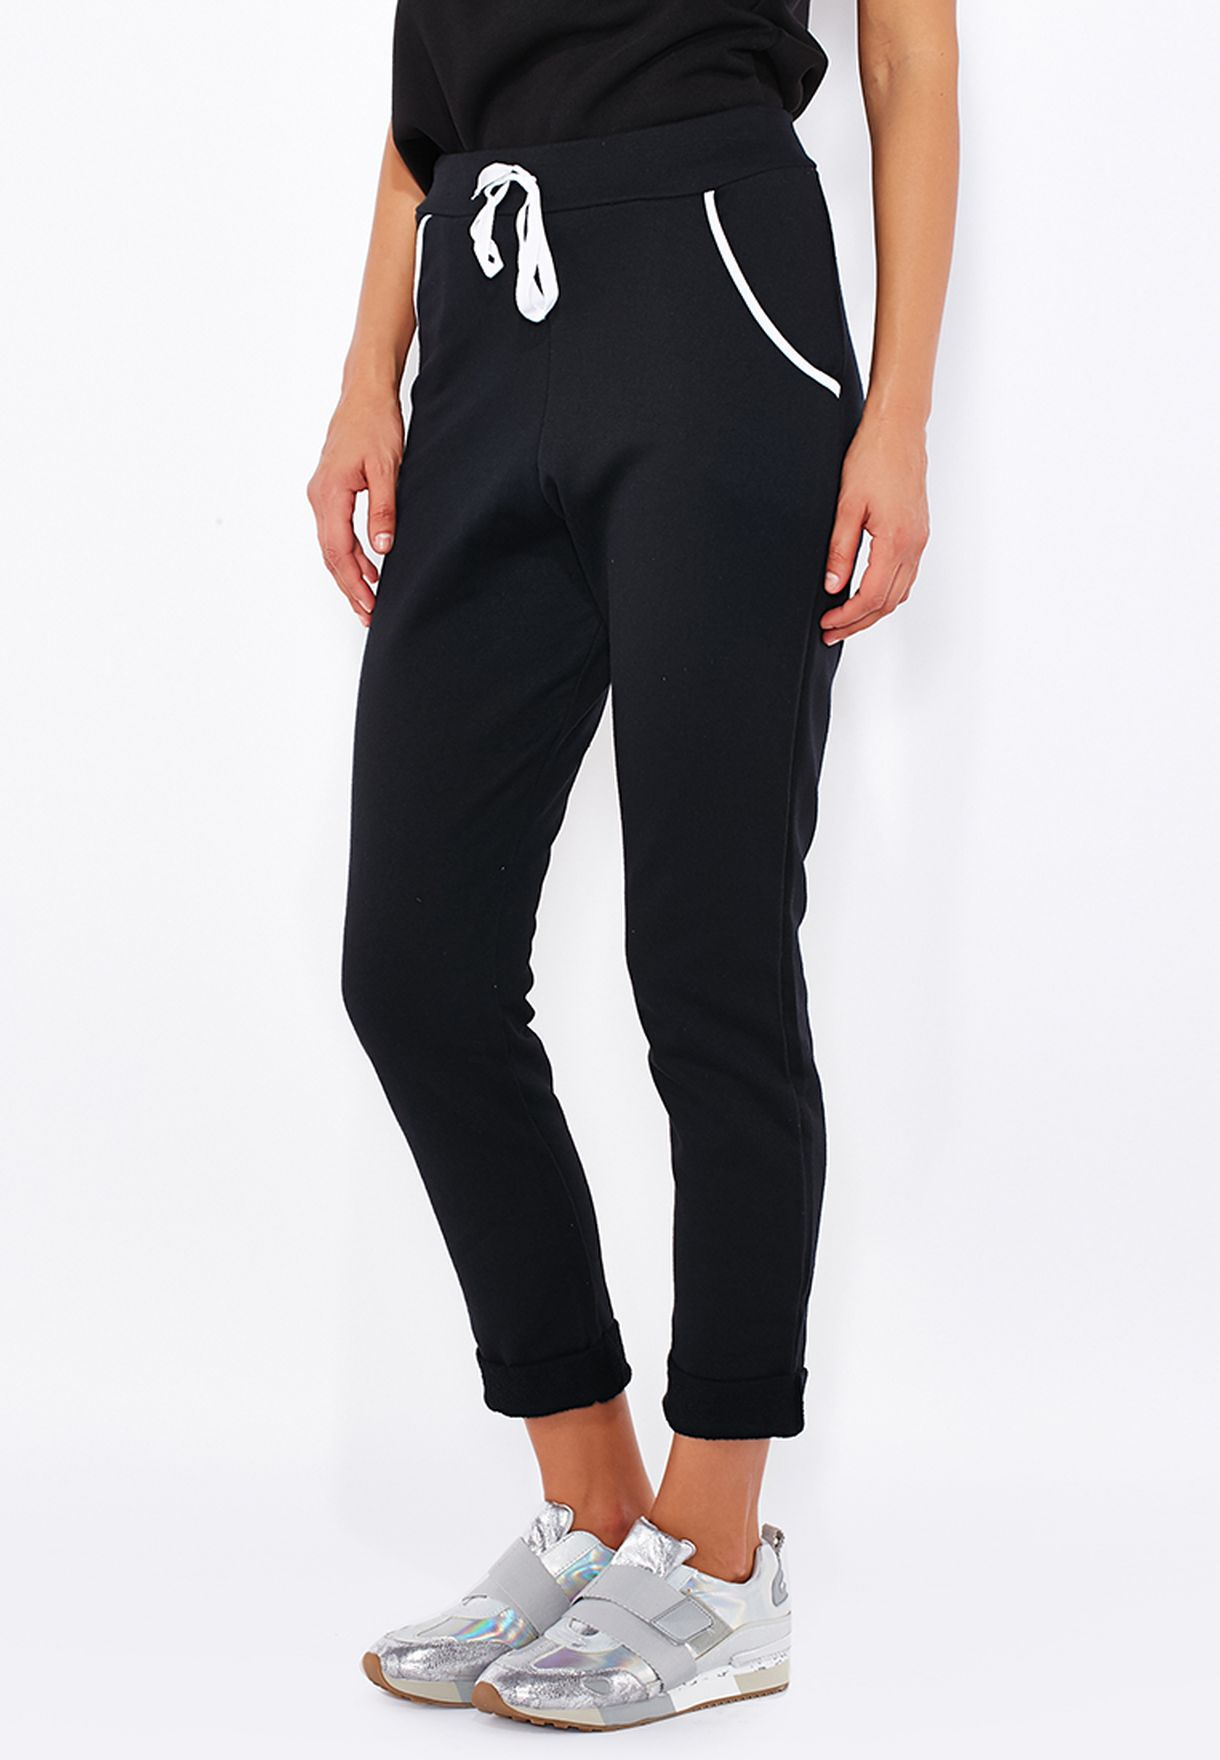 b057e9c22cb Shop Boohoo black Drawstring Sweatpants AZZ10743 for Women in Kuwait ...